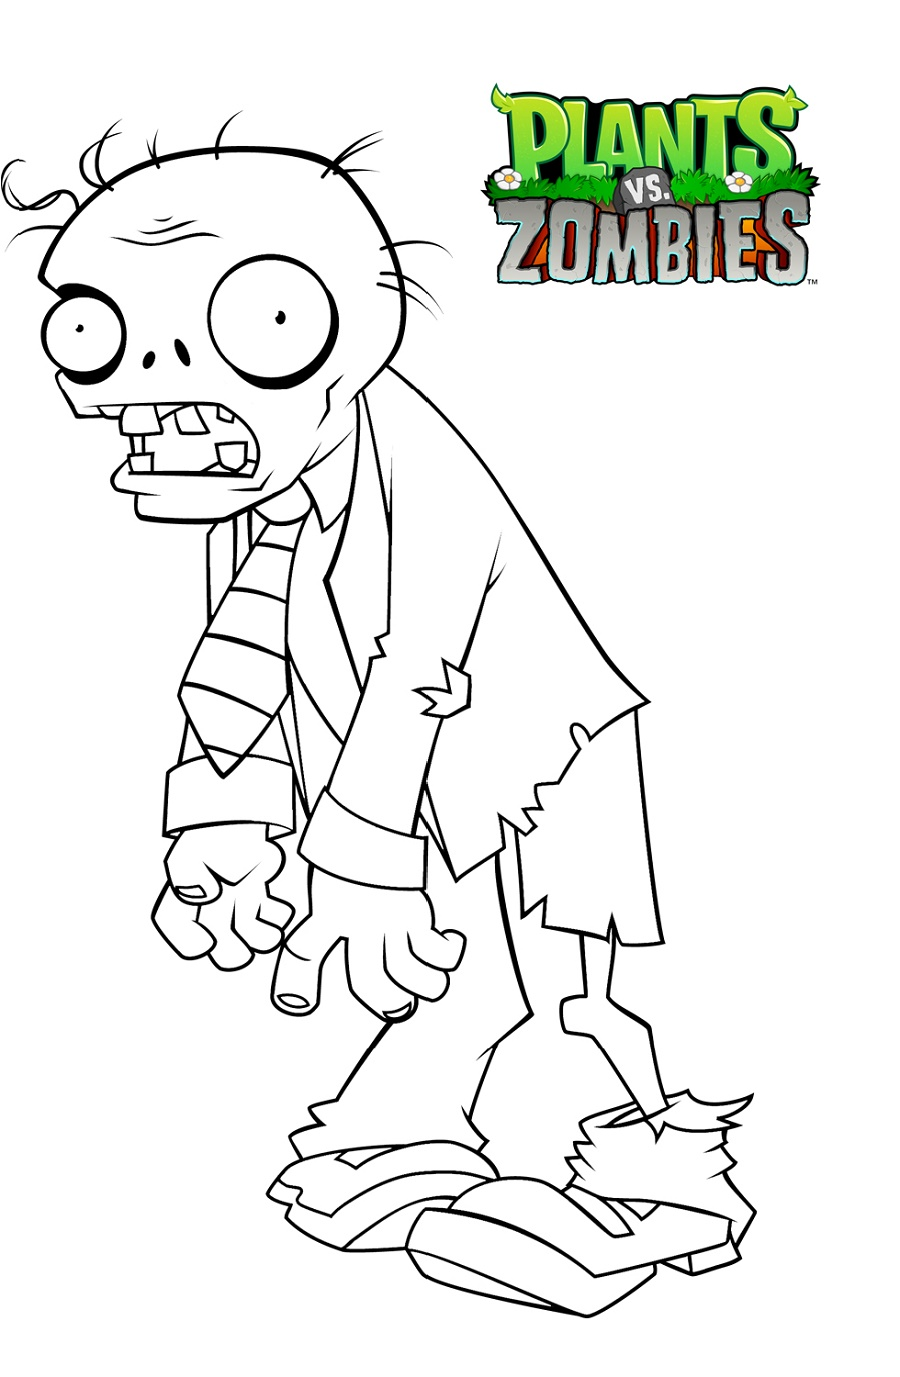 Zombie Coloring Pages Plant VS Zombies